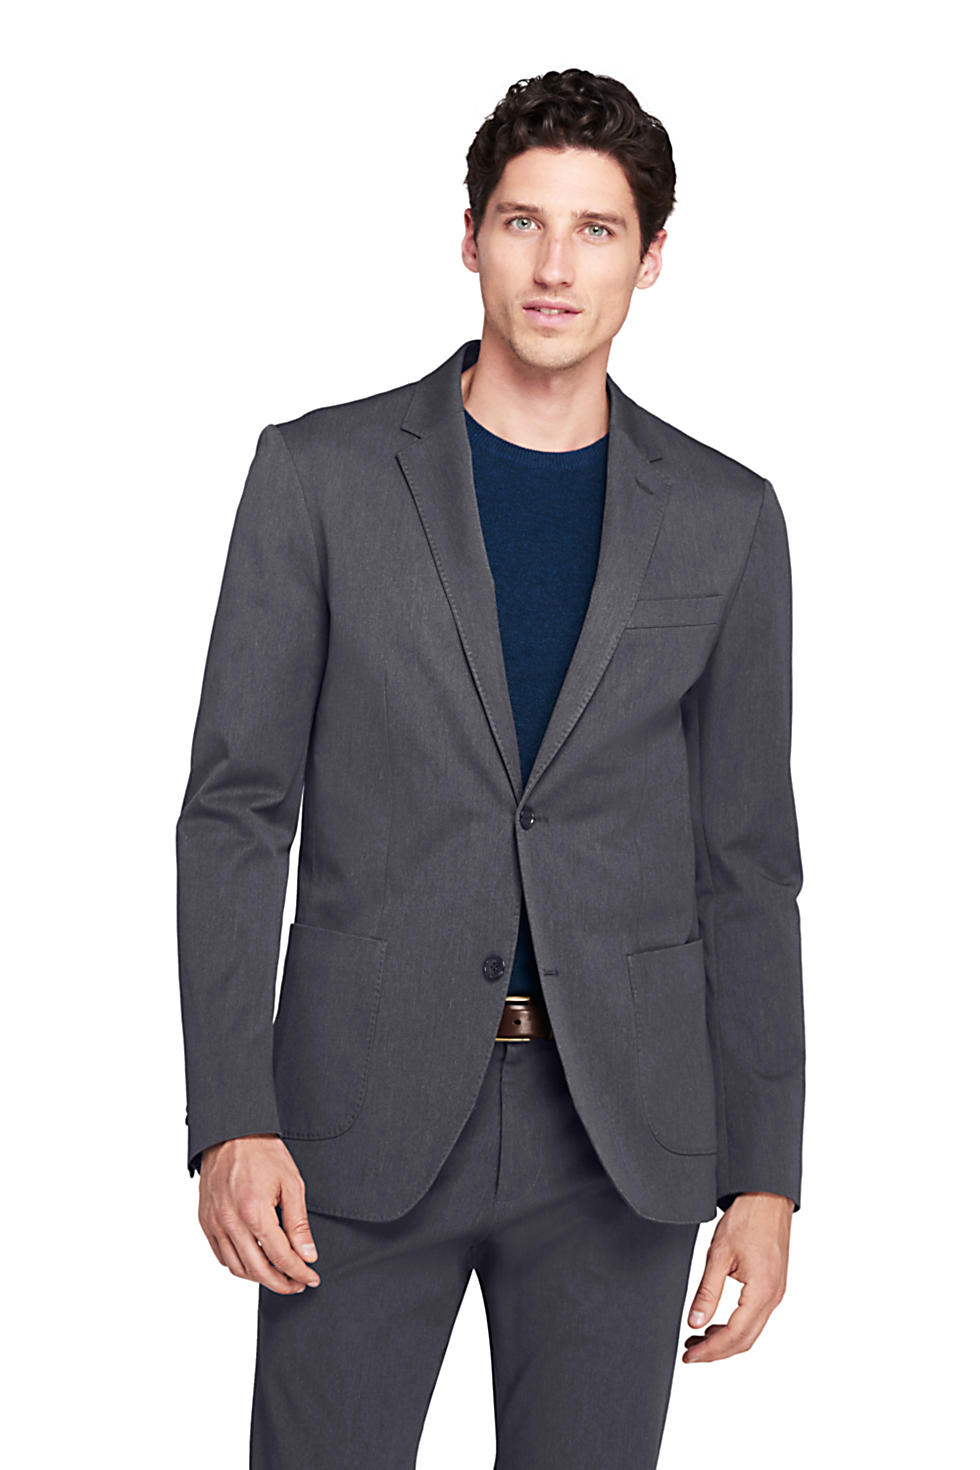 Lands' End Men's Tailored Fit Comfort-First Travel Blazer (Dark Asphalt)